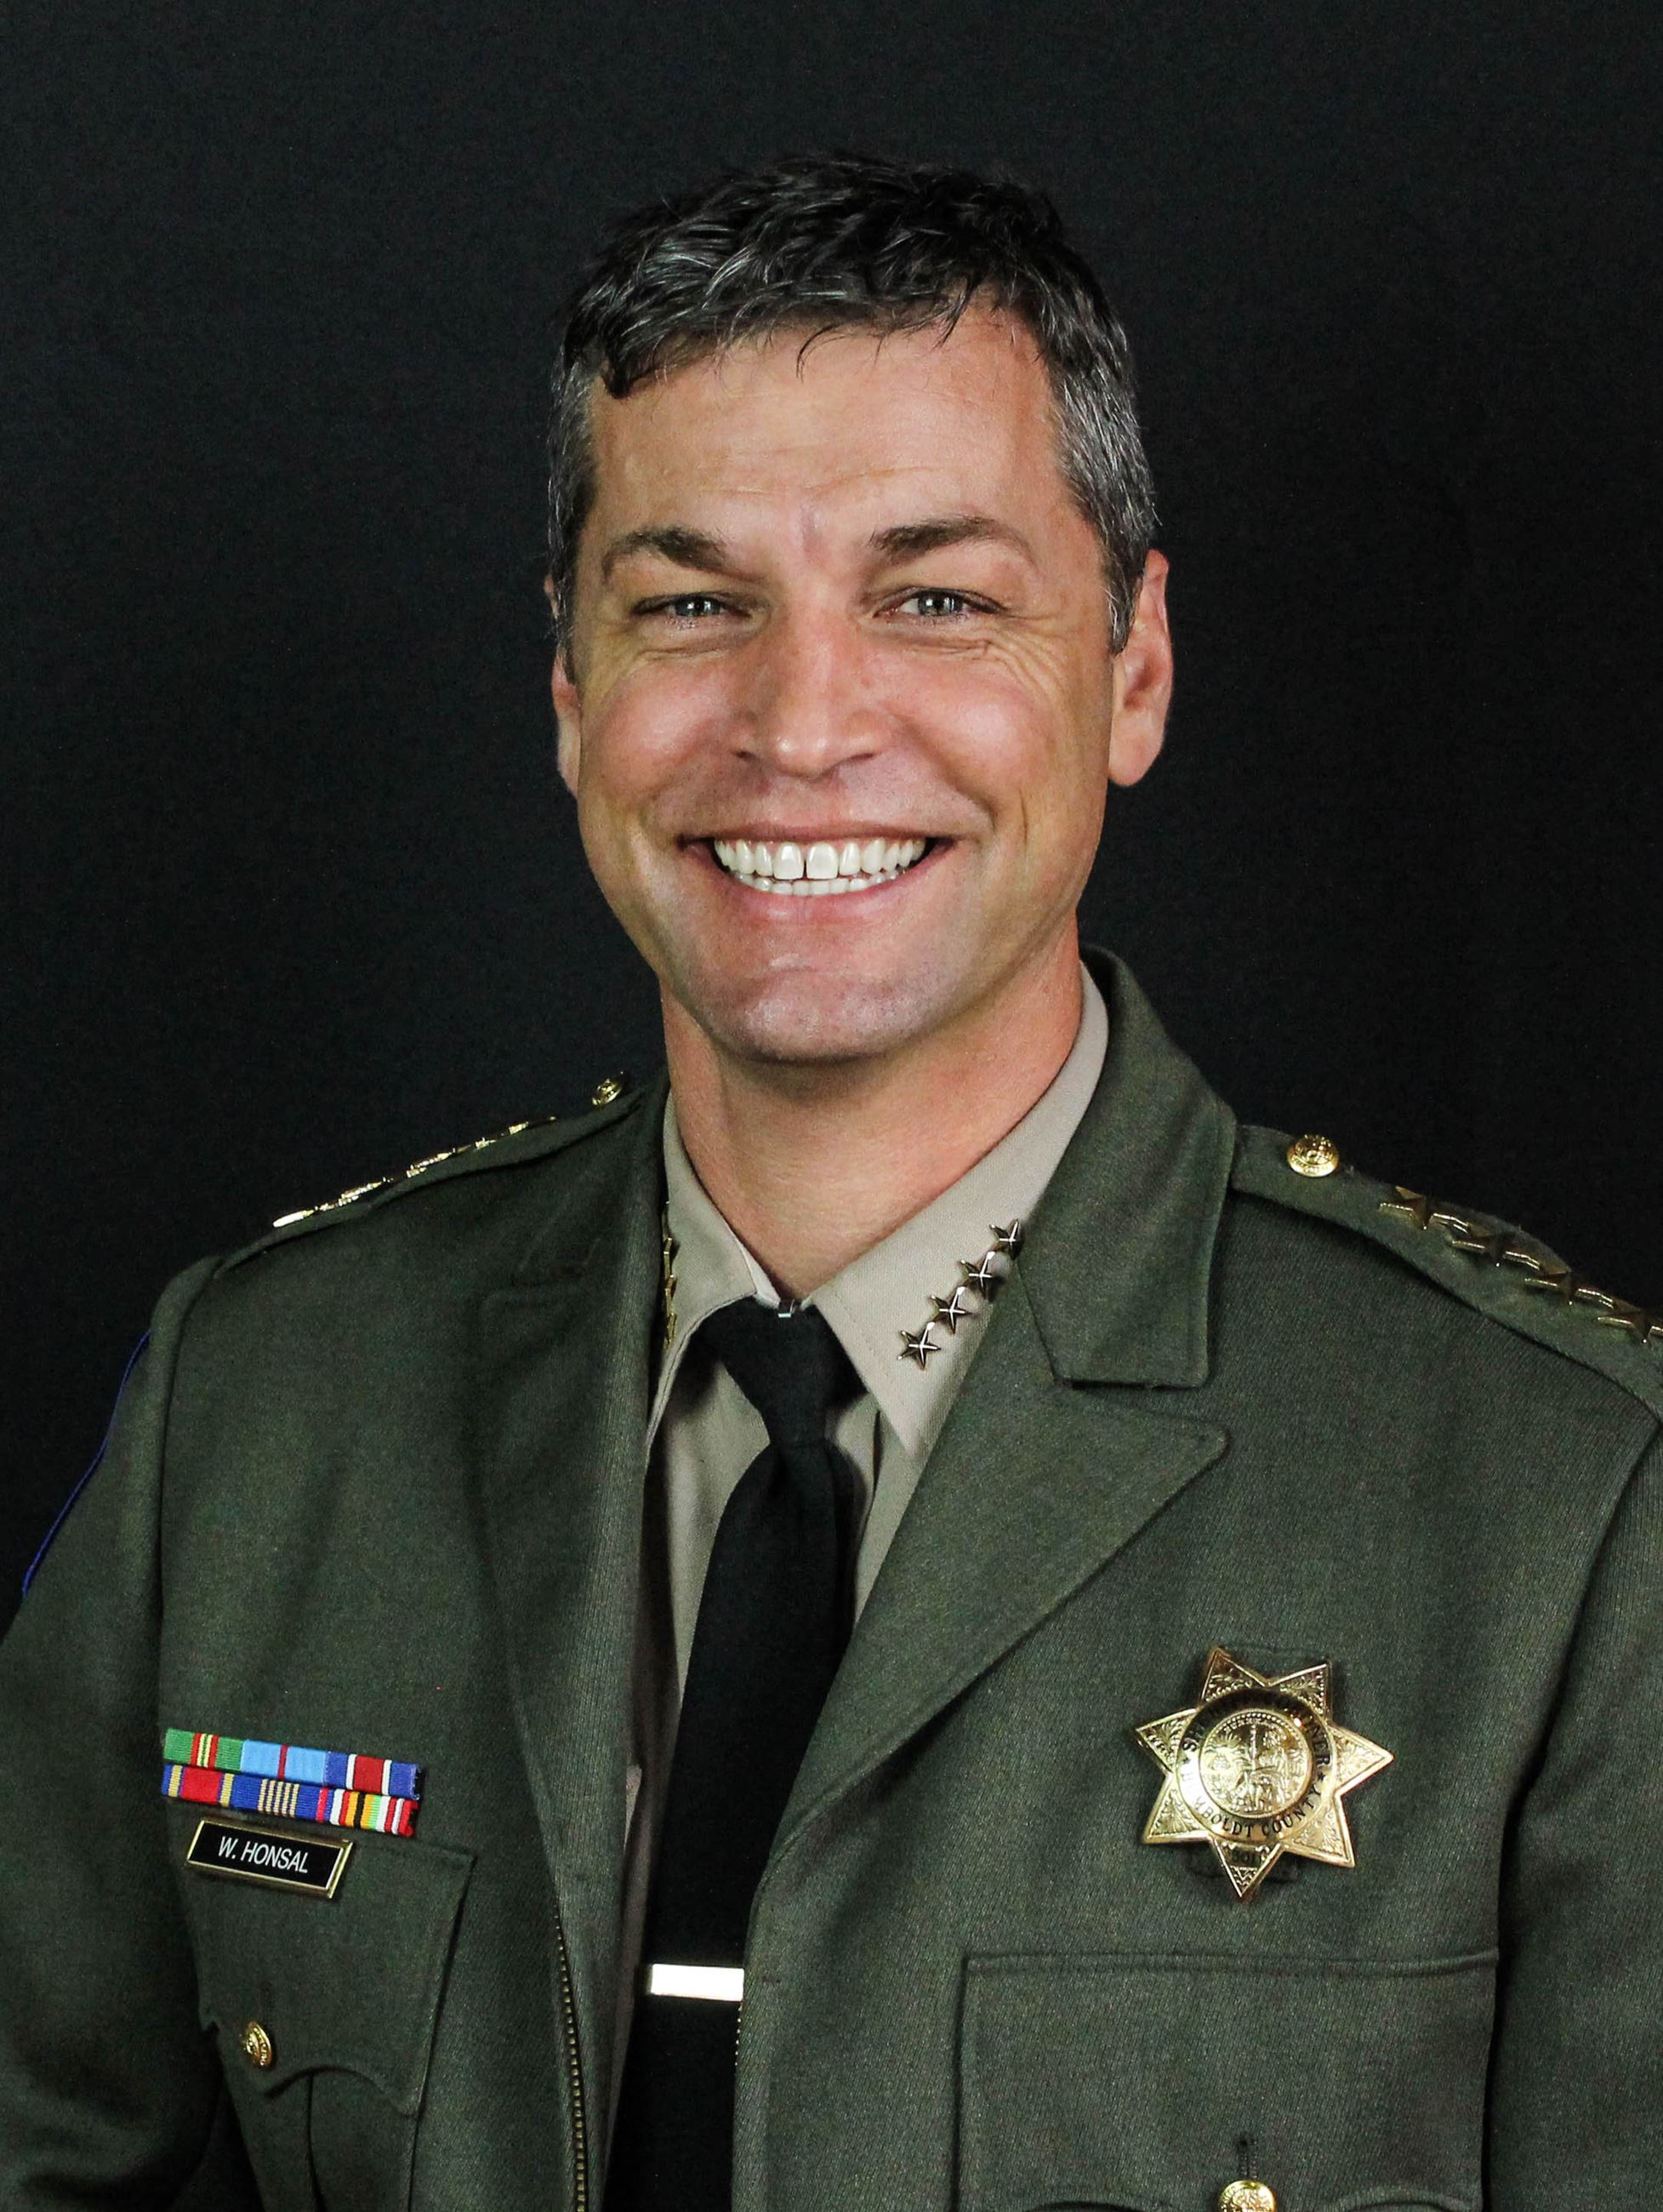 Humboldt County Sheriff's Office | Humboldt County, CA